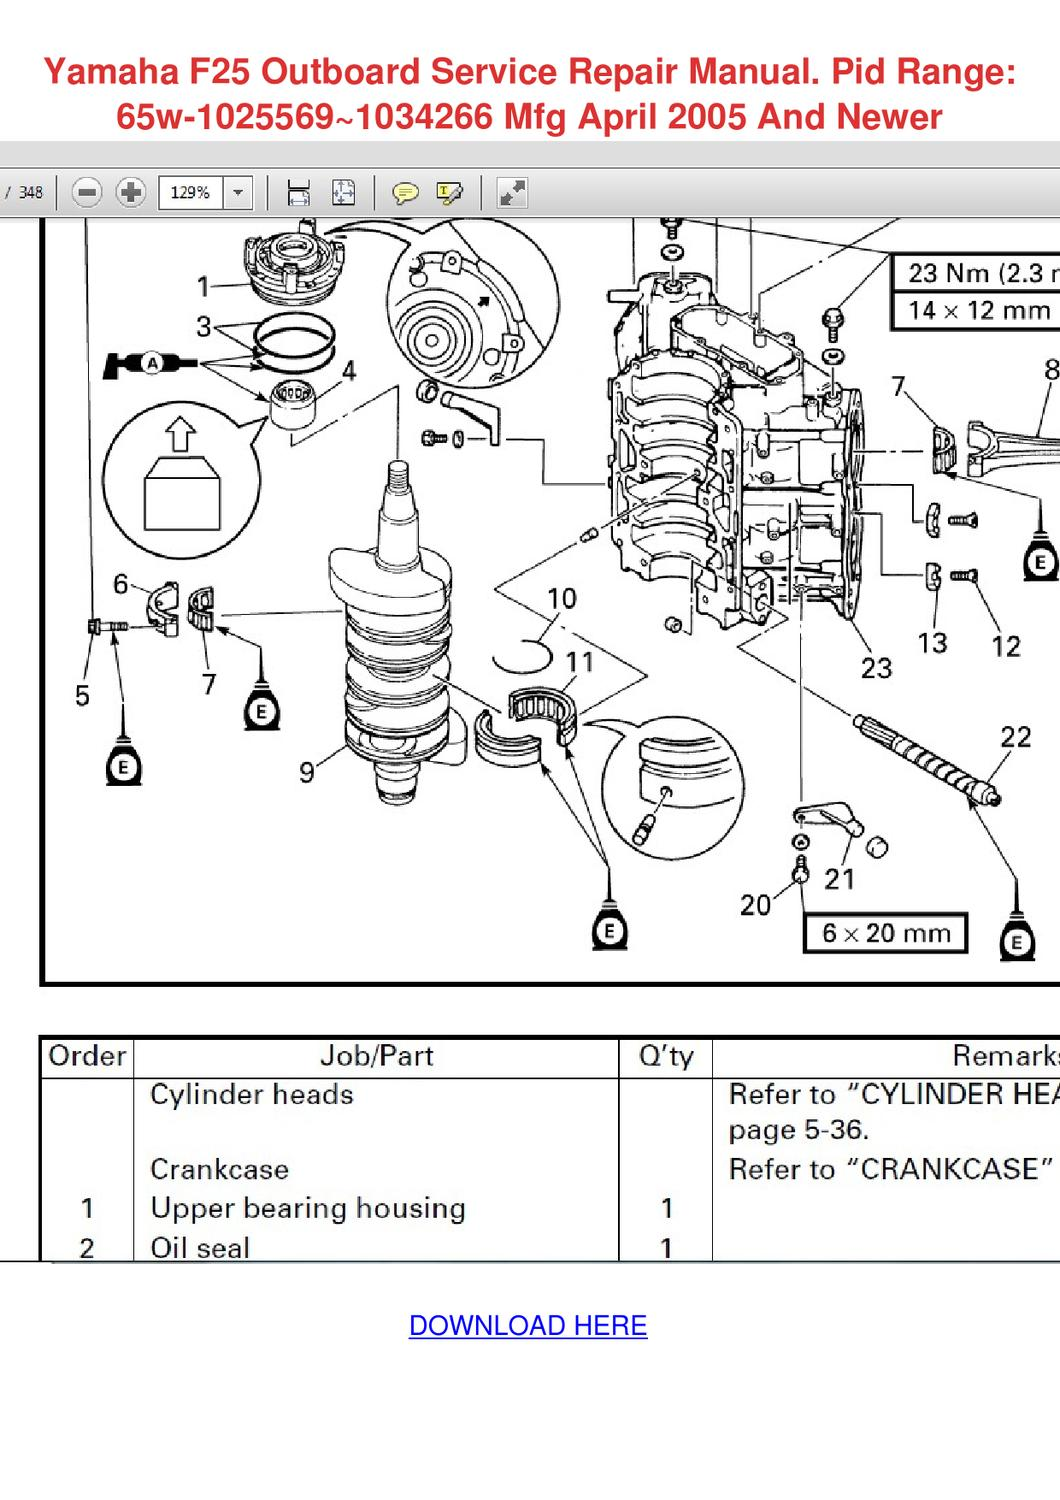 Yamaha f25 outboard service repair manual pid by yung for Yamaha outboard service